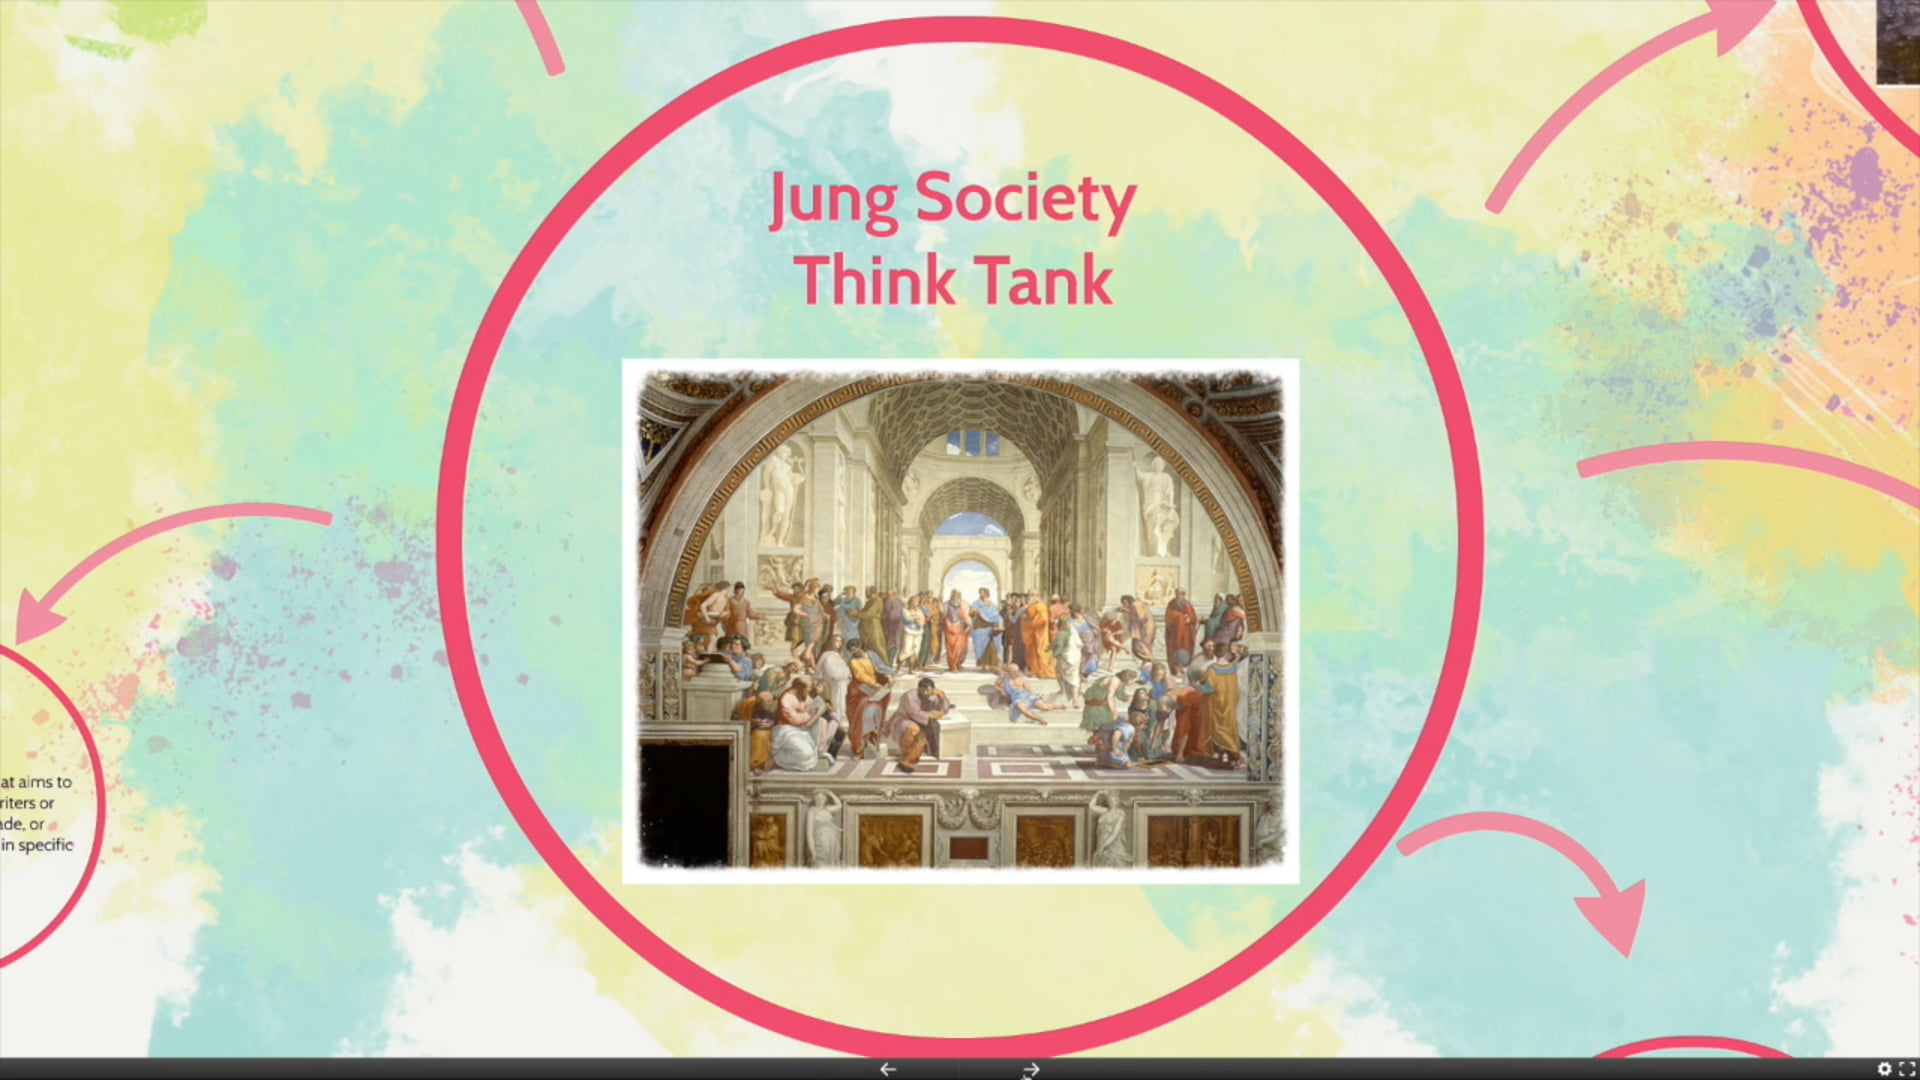 Jung Society Think Tank Introduction